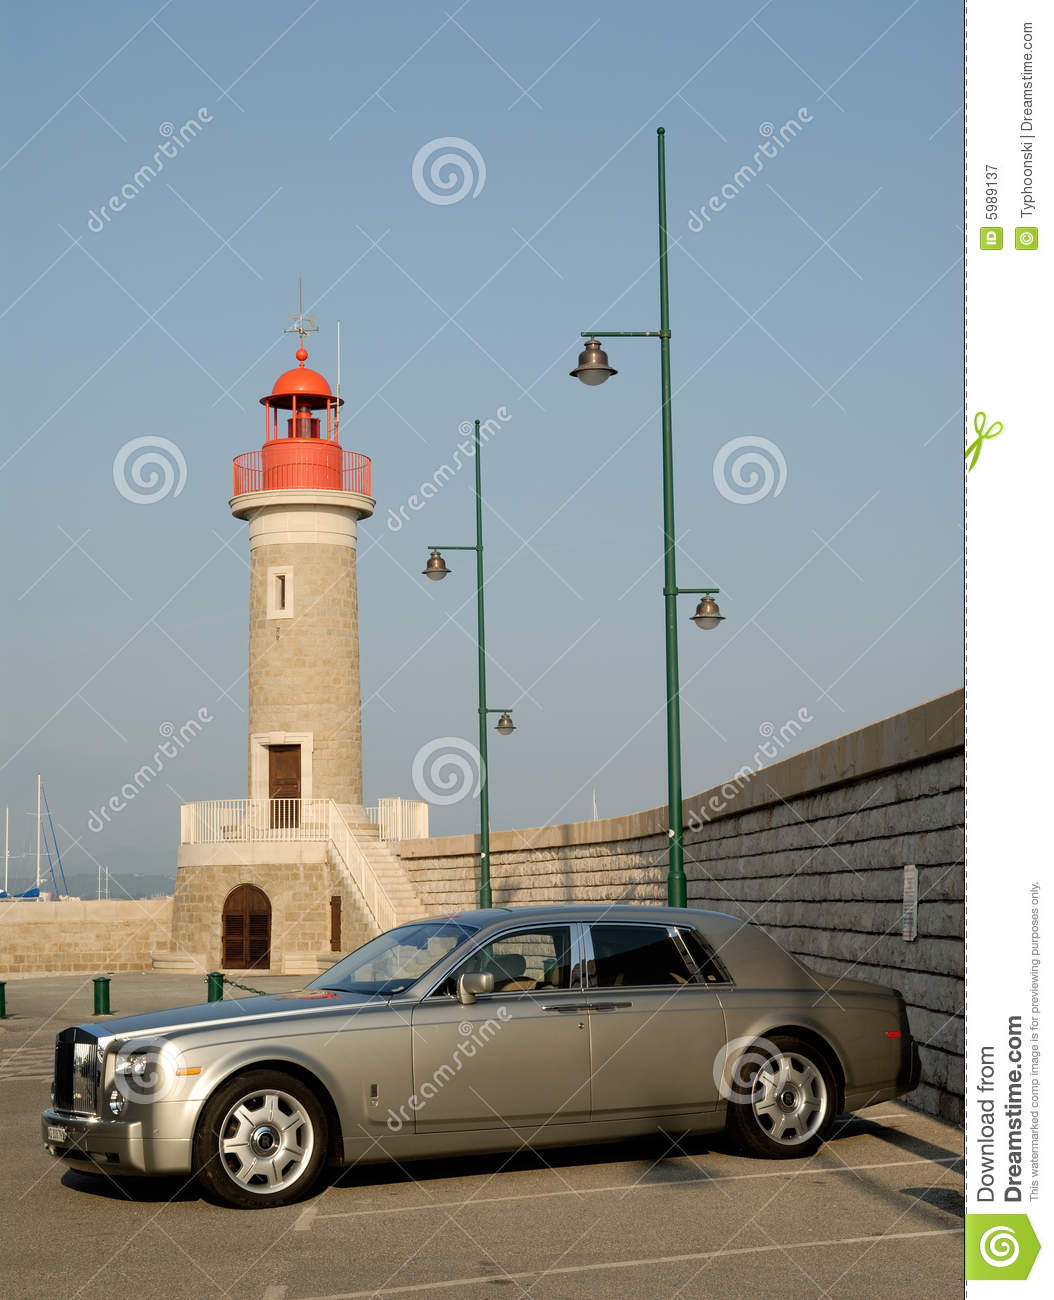 rolls royce in saint tropez france royalty free stock photography image 5989137. Black Bedroom Furniture Sets. Home Design Ideas